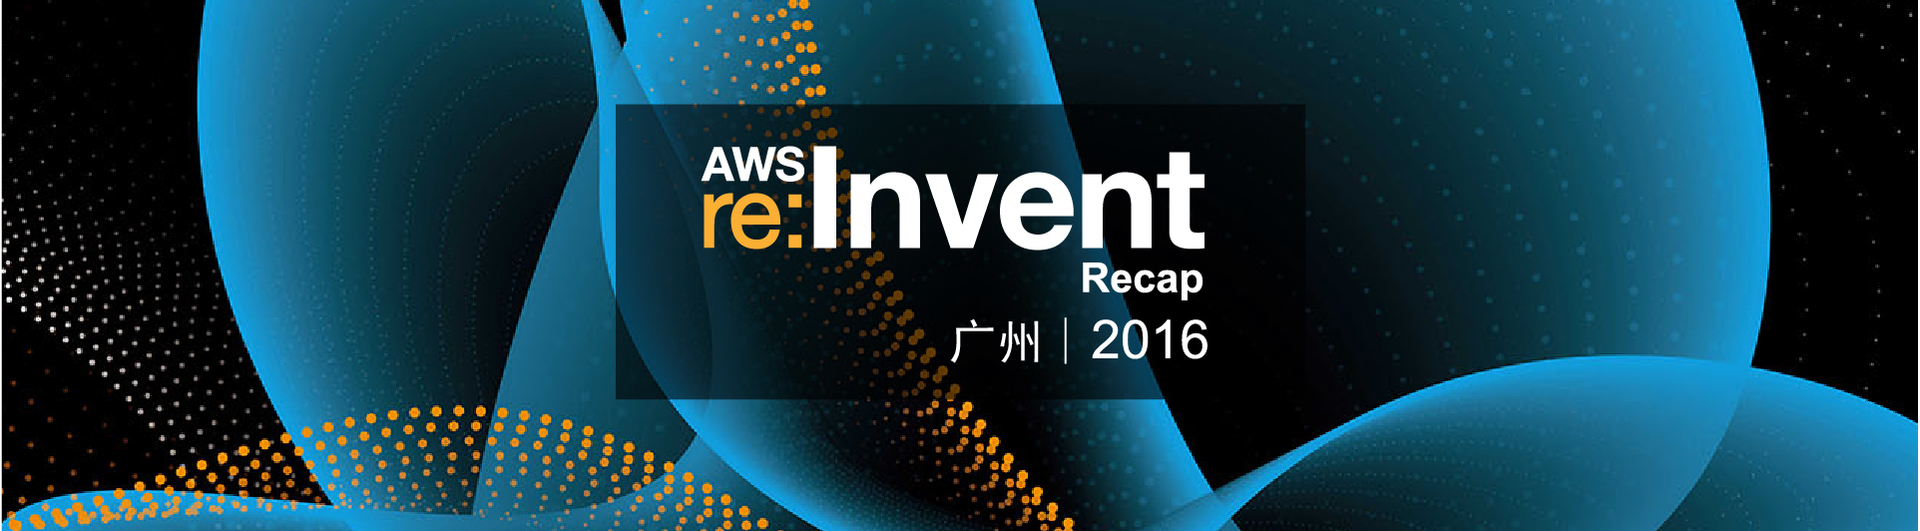 AWS re:Invent Recap 2016 - 广州